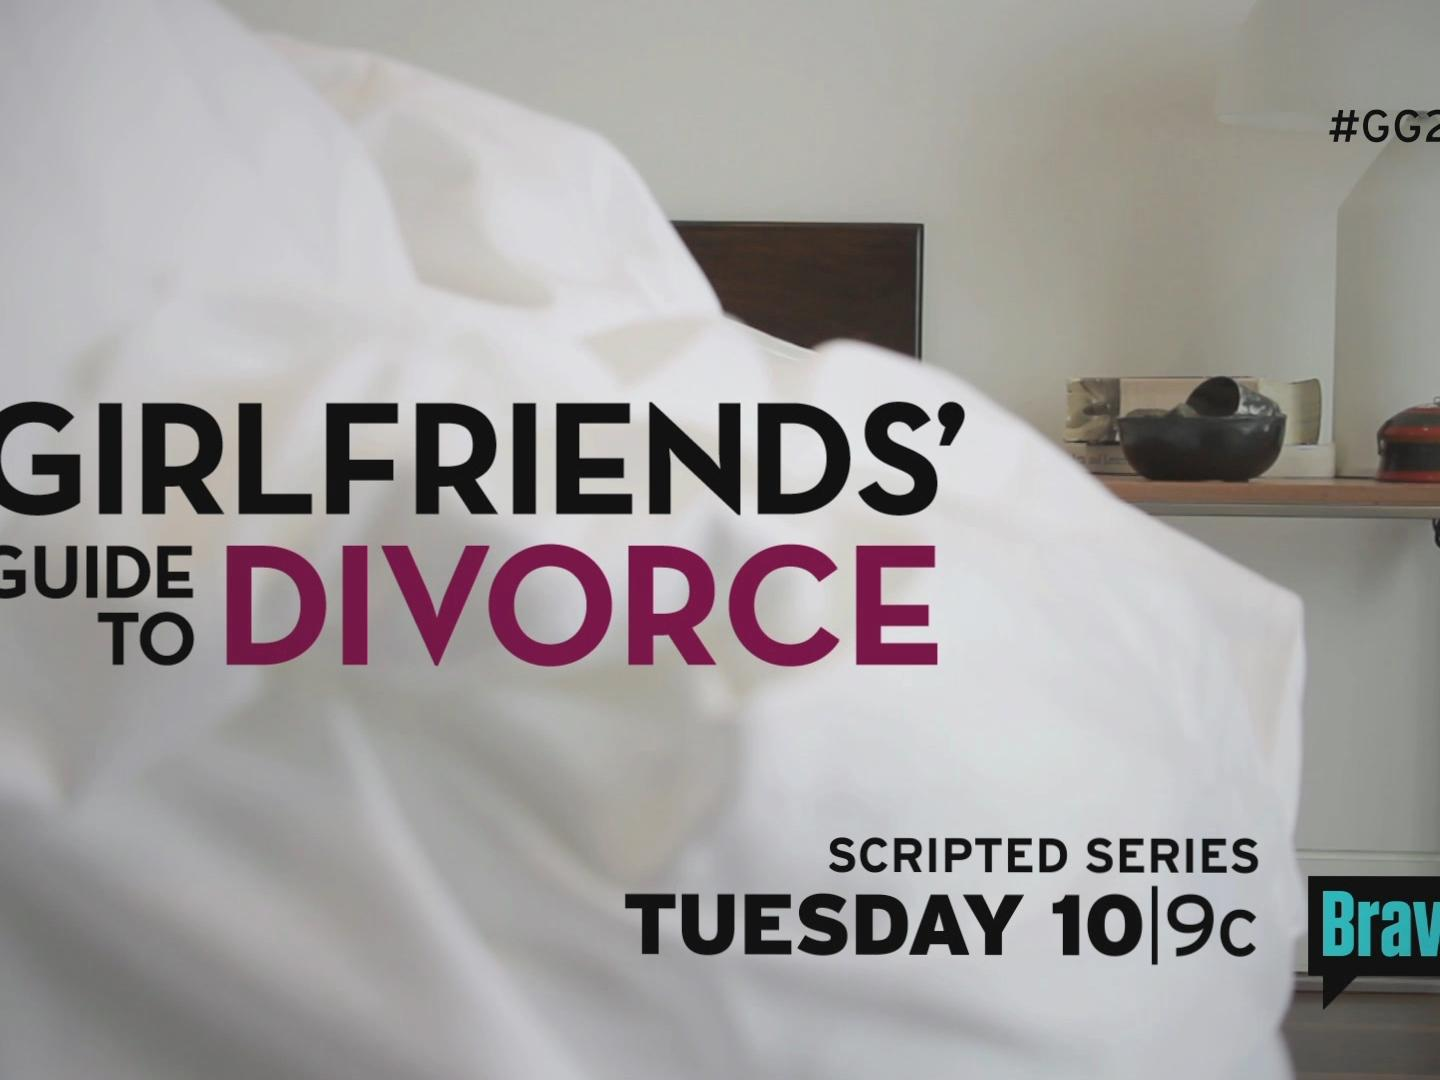 Image for Girlfriends' Guide to Divorce Launch/Bedroom :30